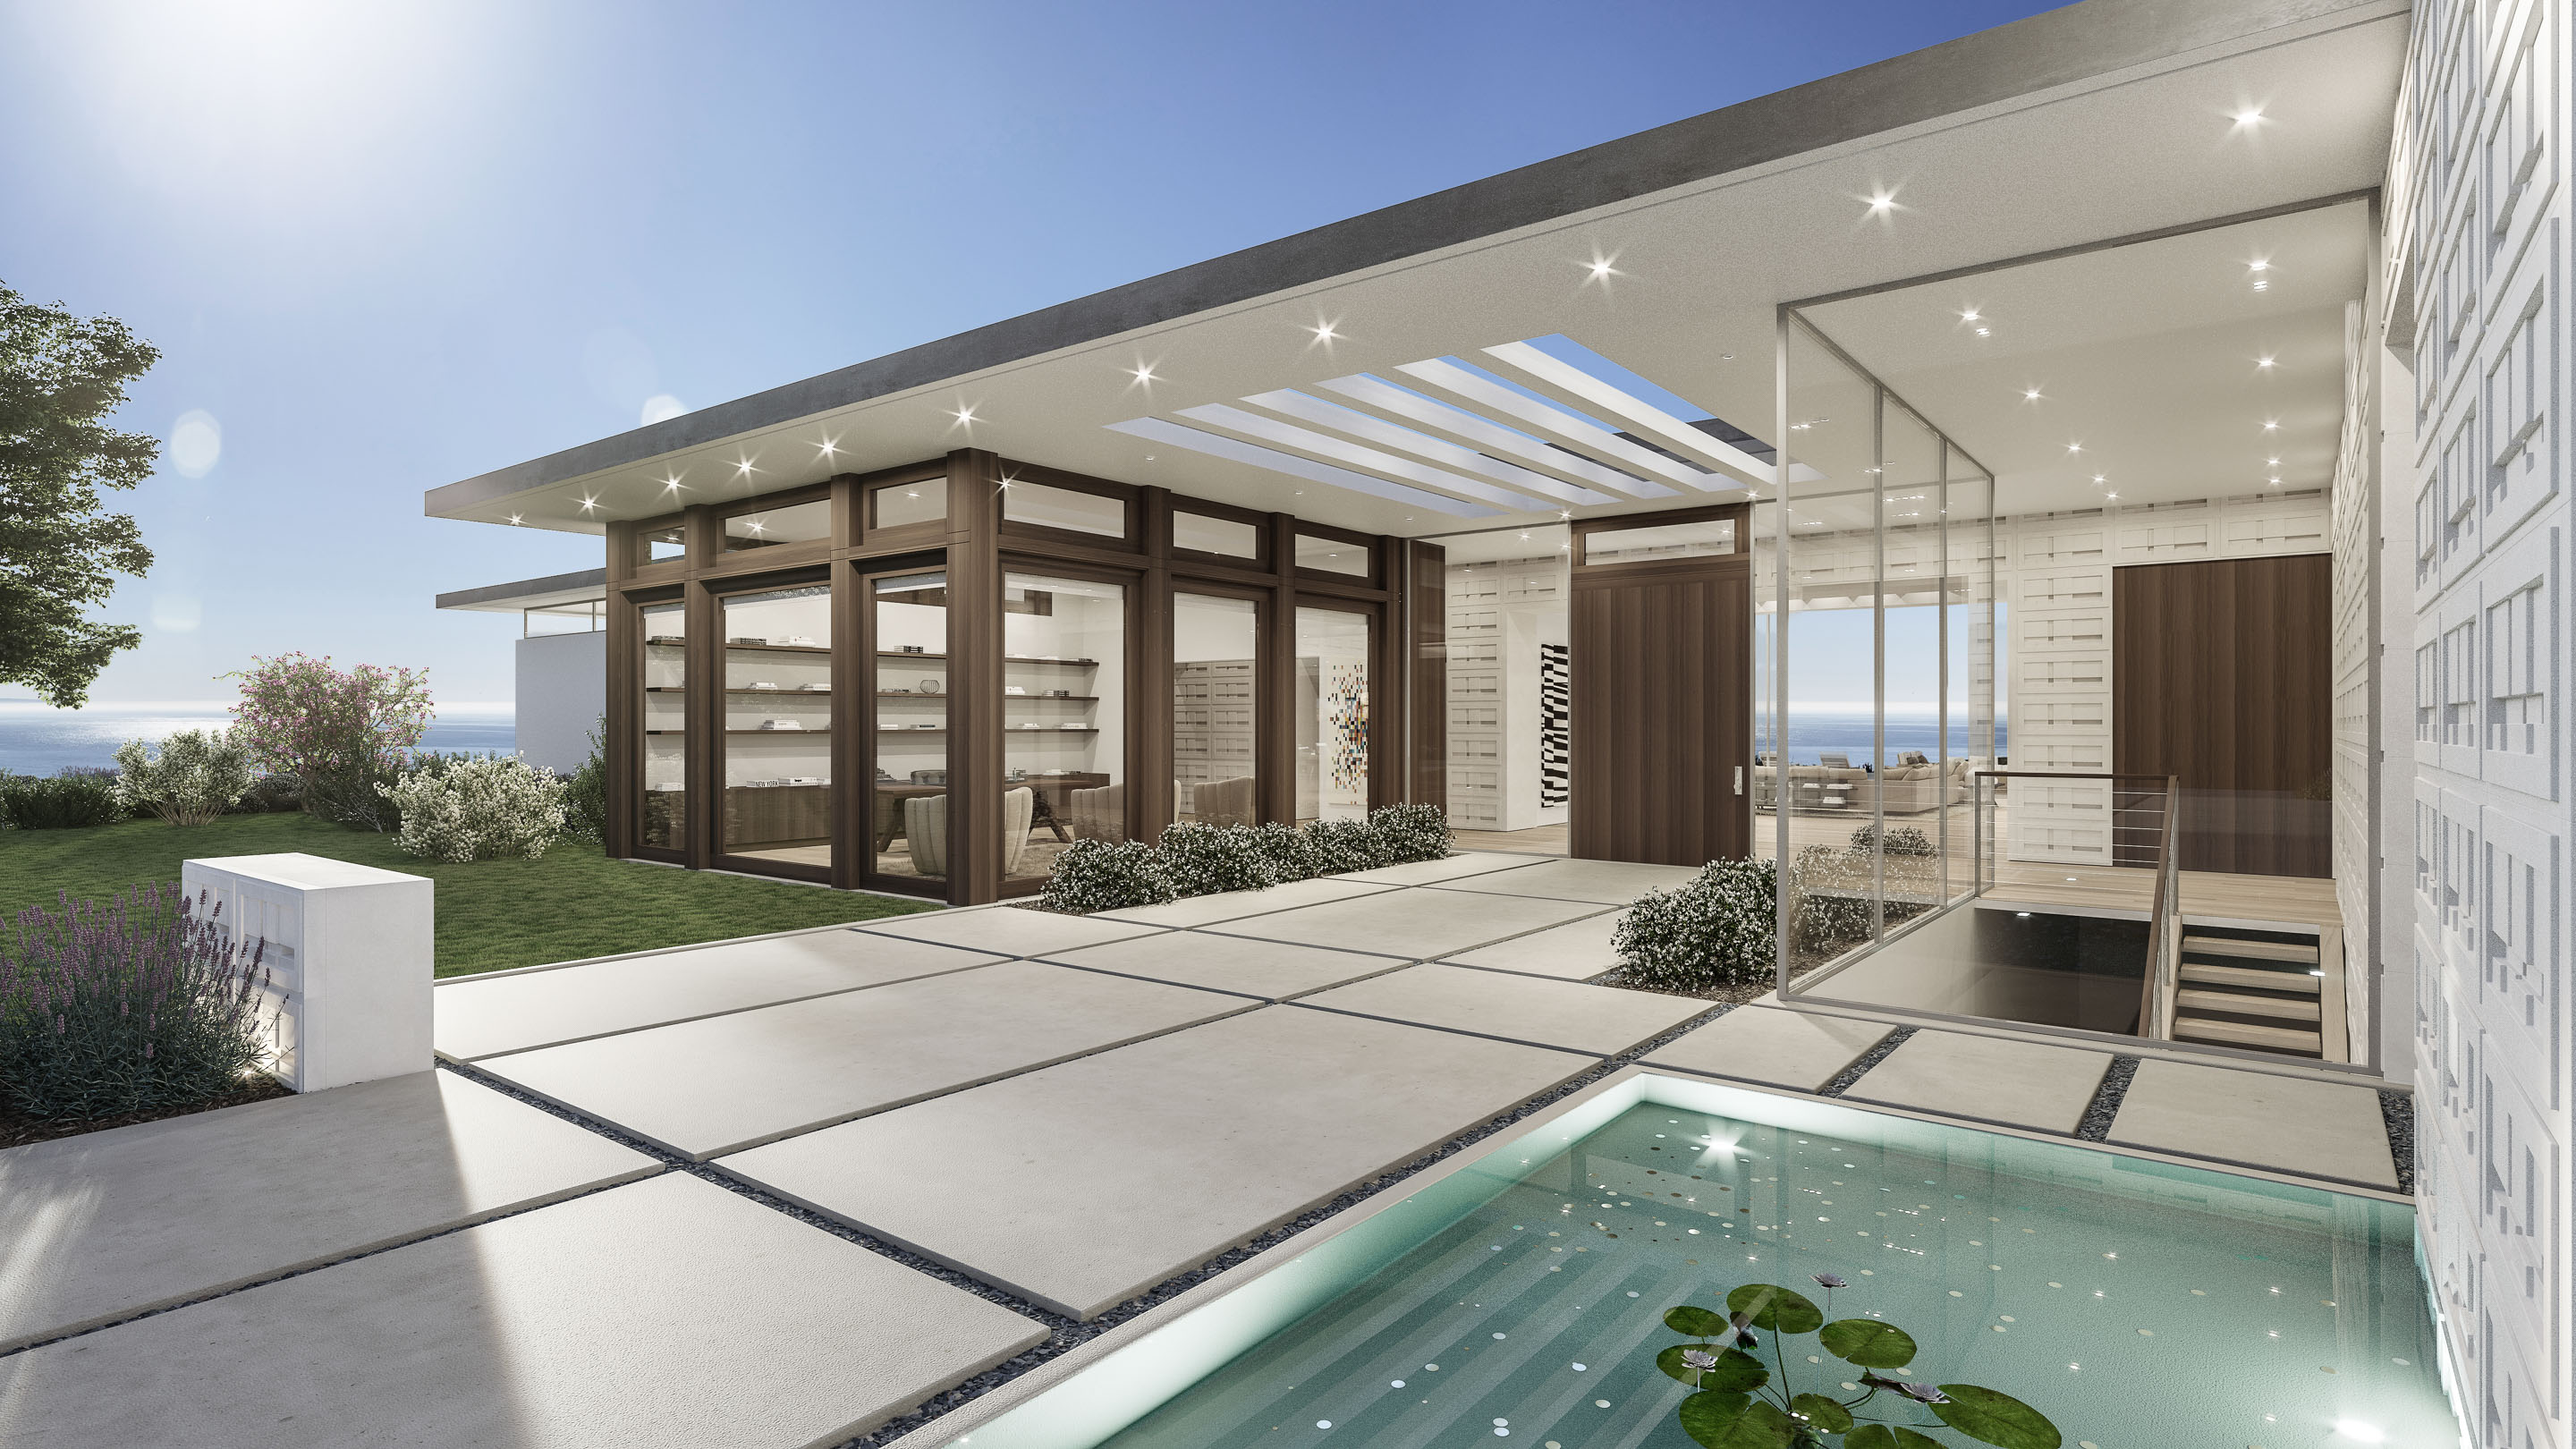 Featuring five mid century modern homes atop a bluff in the guard gated malibu colony community that are slated for completion in mid 2020